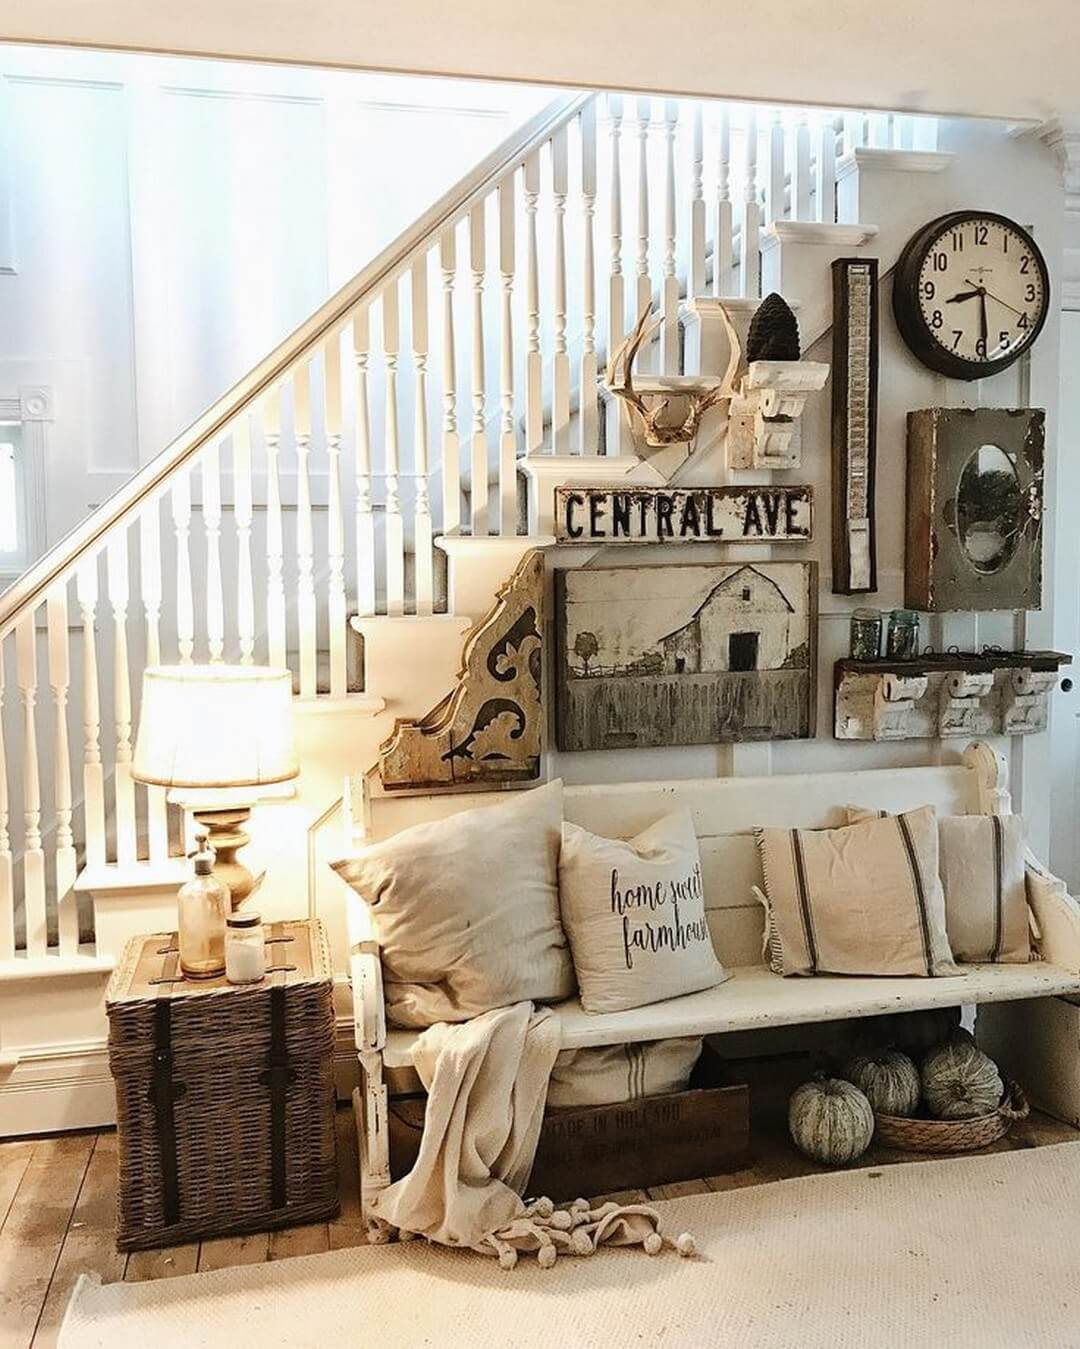 how to decorate living room wall inexpensive sets 45 best farmhouse decor ideas and designs for 2019 35 central avenue meets middle of nowhere